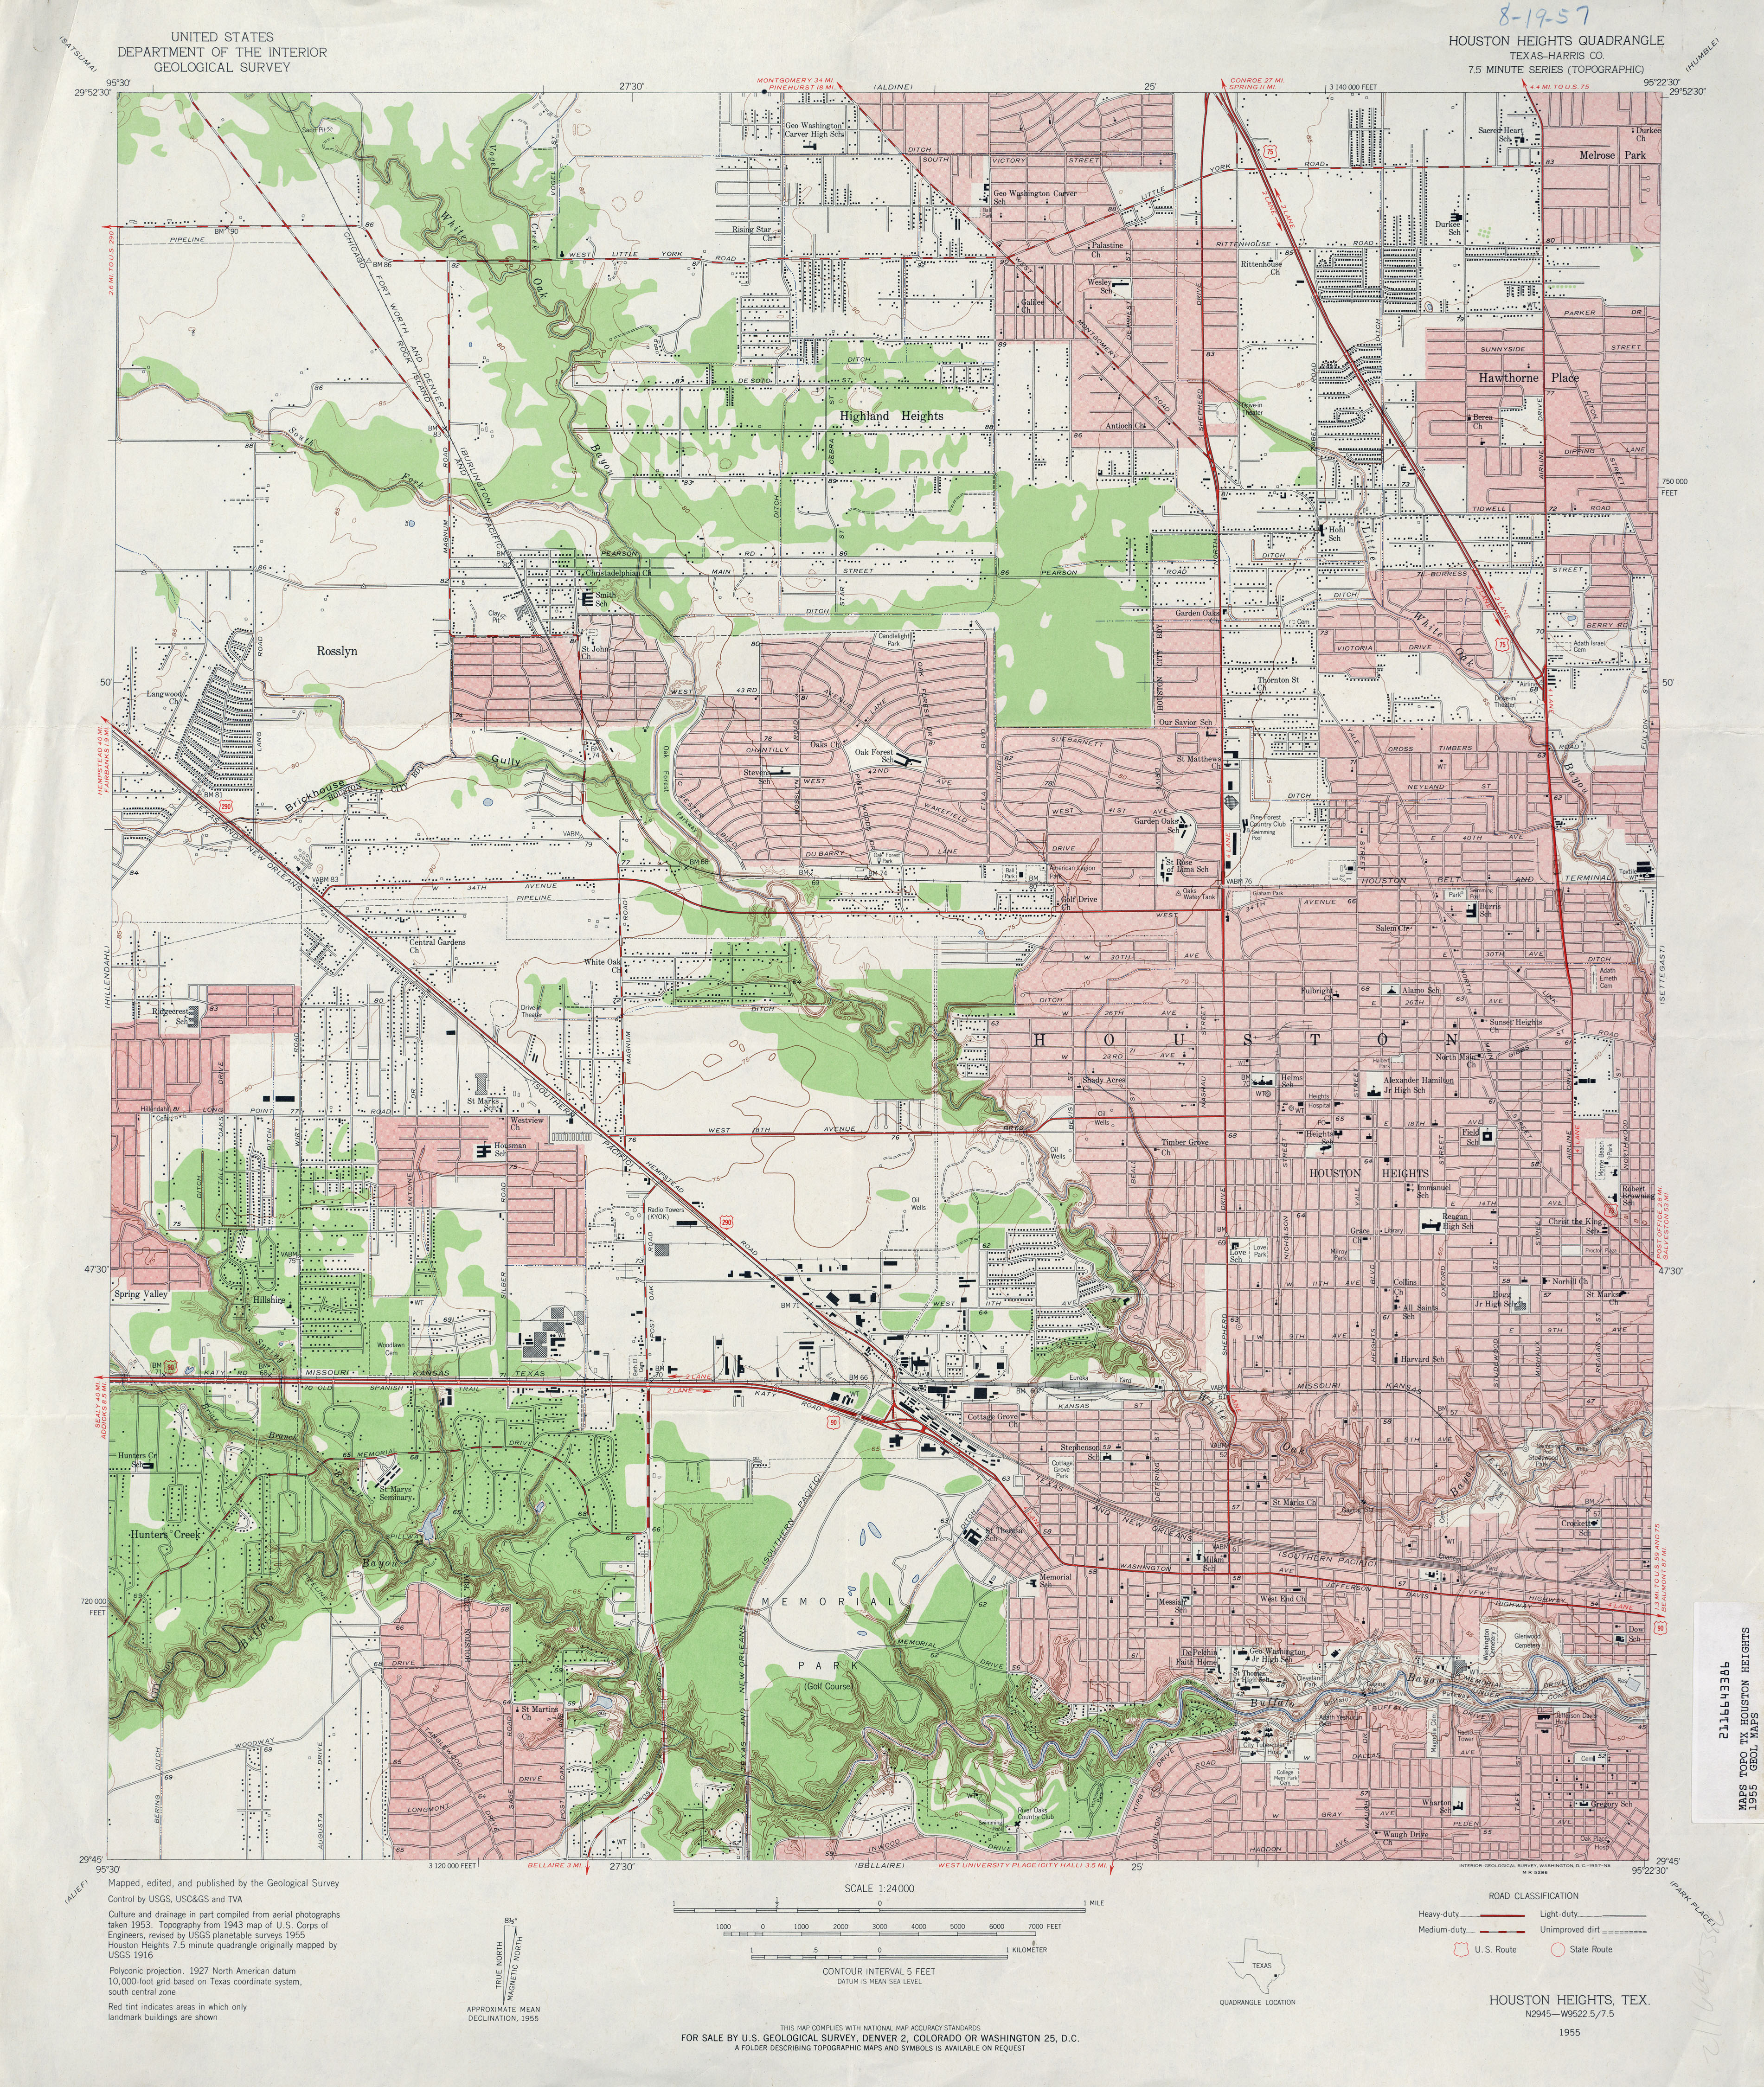 topographic map of houston Old Houston Maps Houston Past